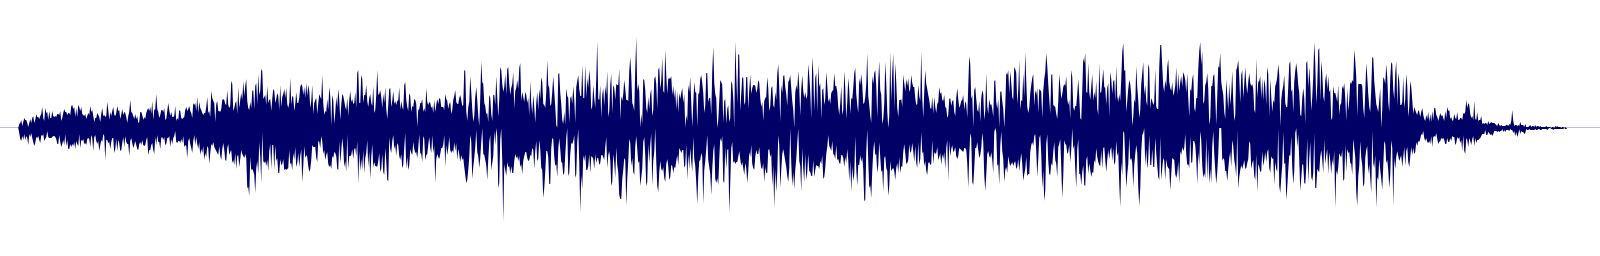 waveform of track #134812